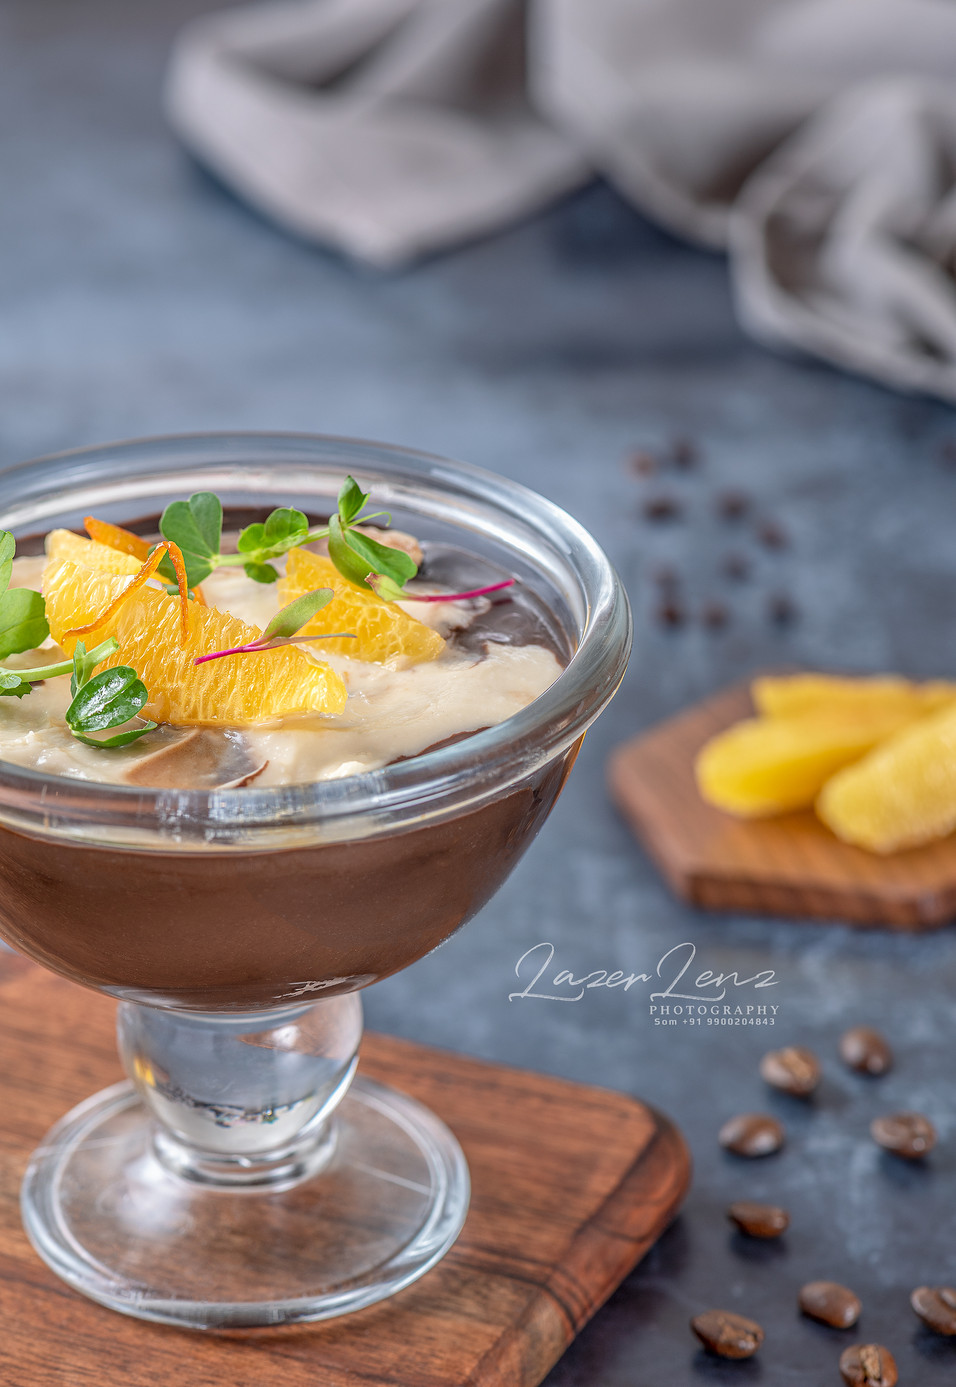 FOOD & BEVERAGE PHOTOGRAPHY